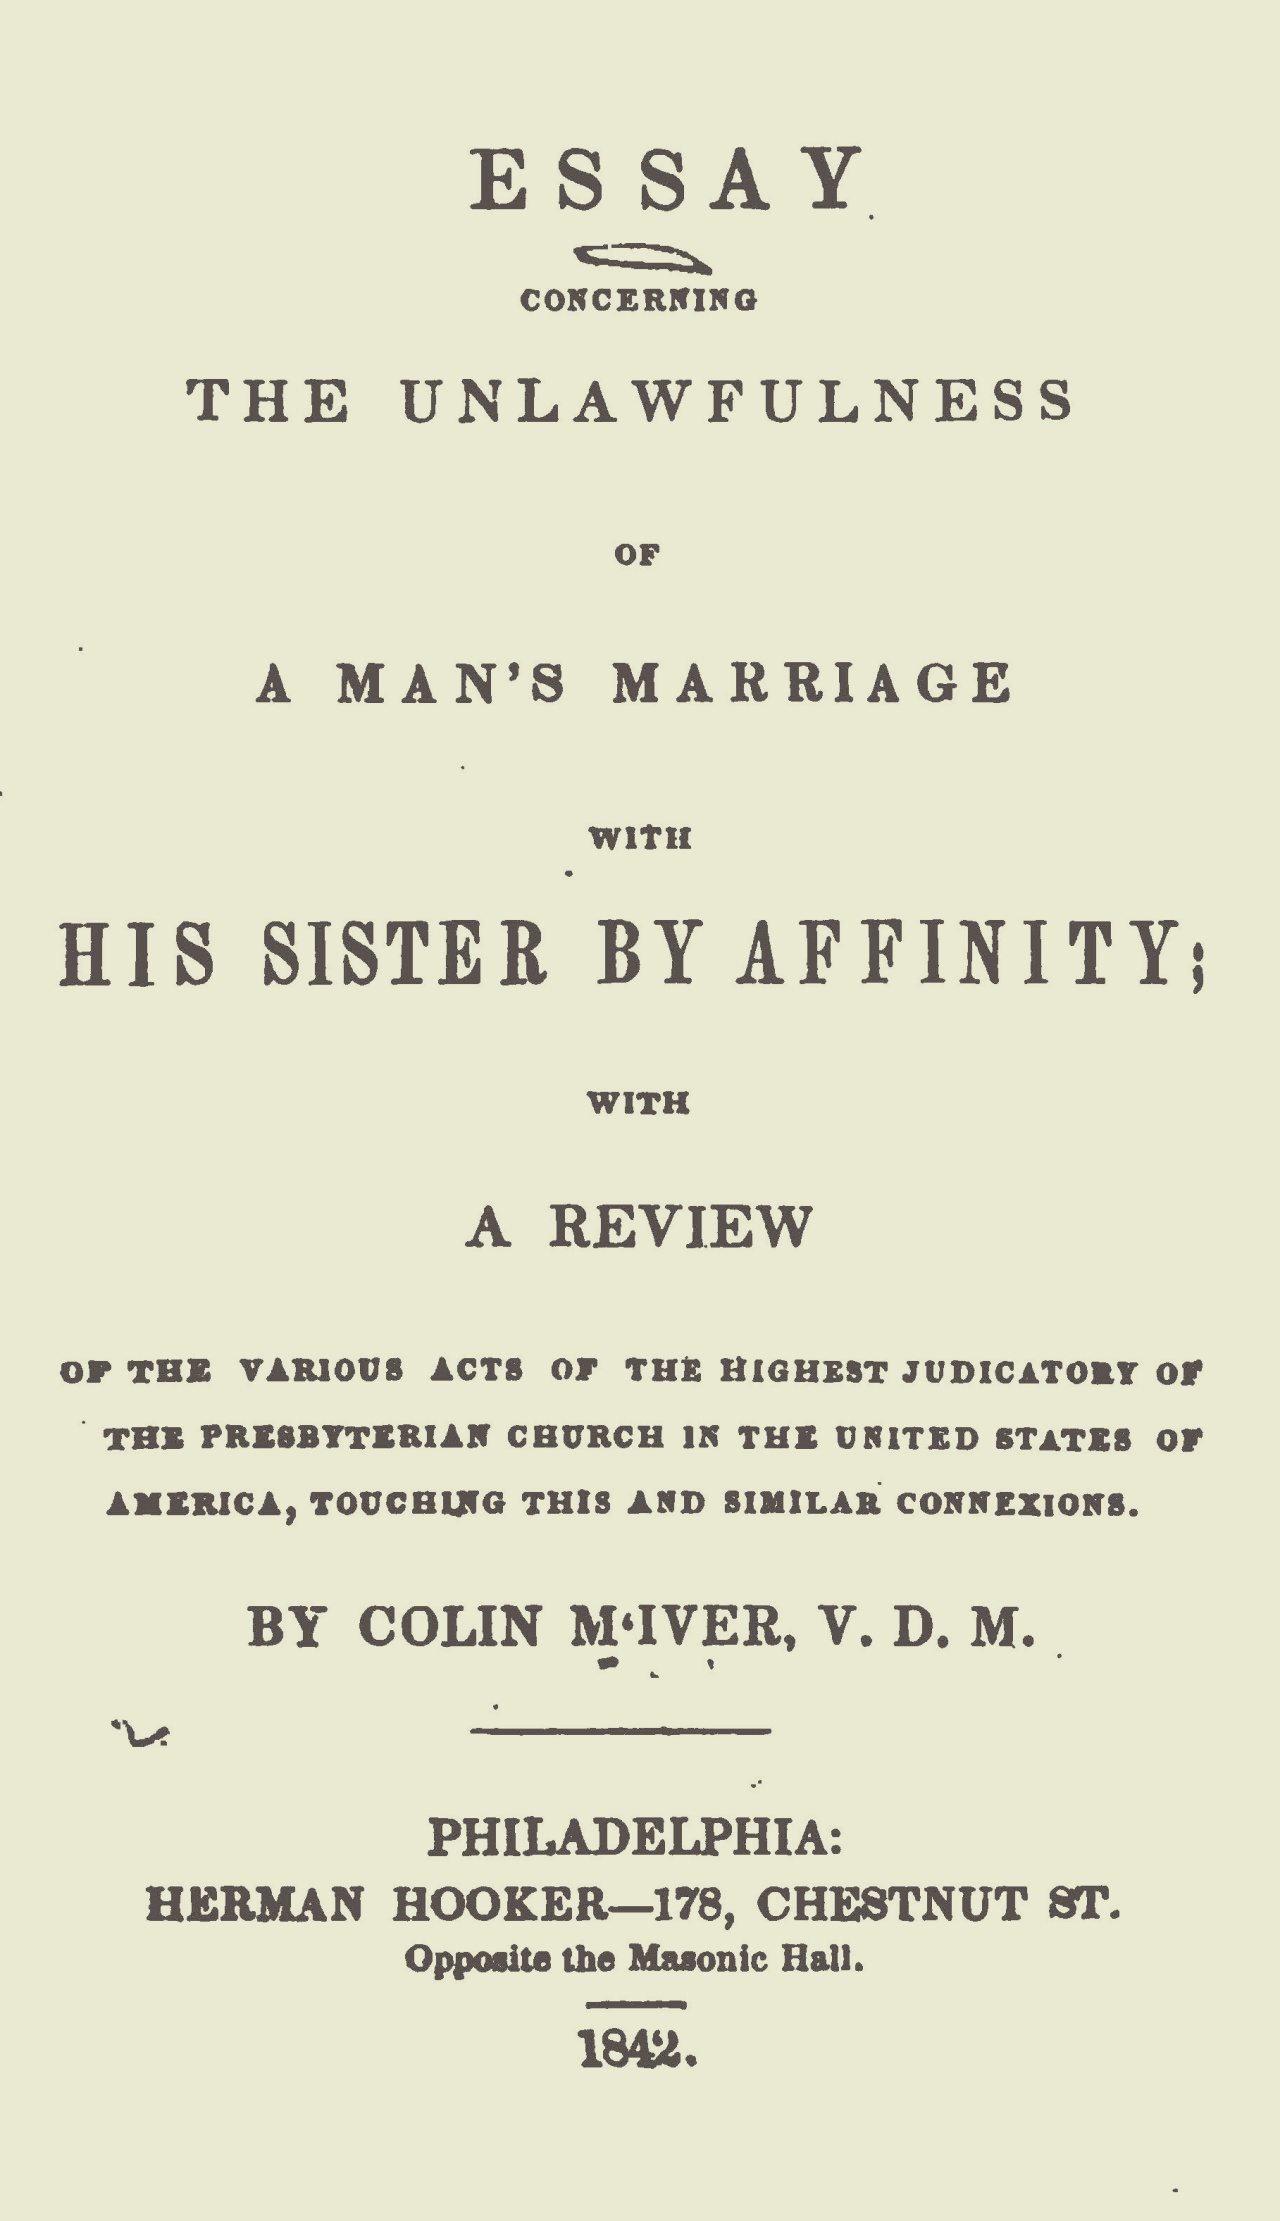 McIver, Colin, An Essay Concerning the Unlawfulness of a Man's Marriage With His Sister by Affinity Title Page.jpg